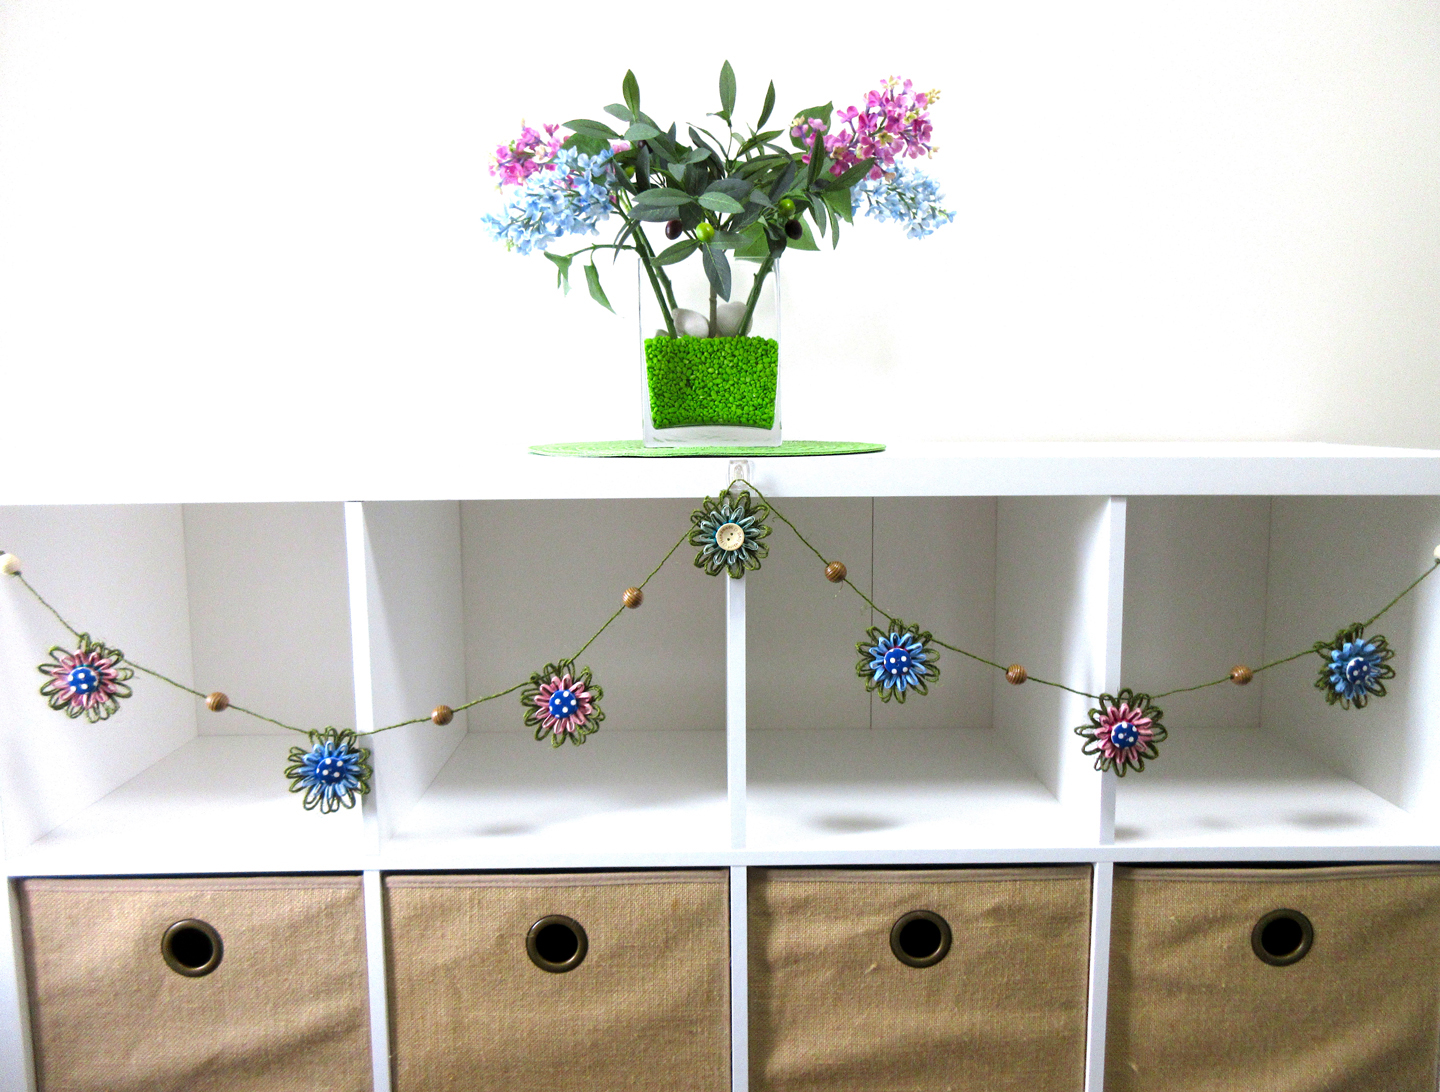 Handmade paper flower garland decoration by M Decor Botanica